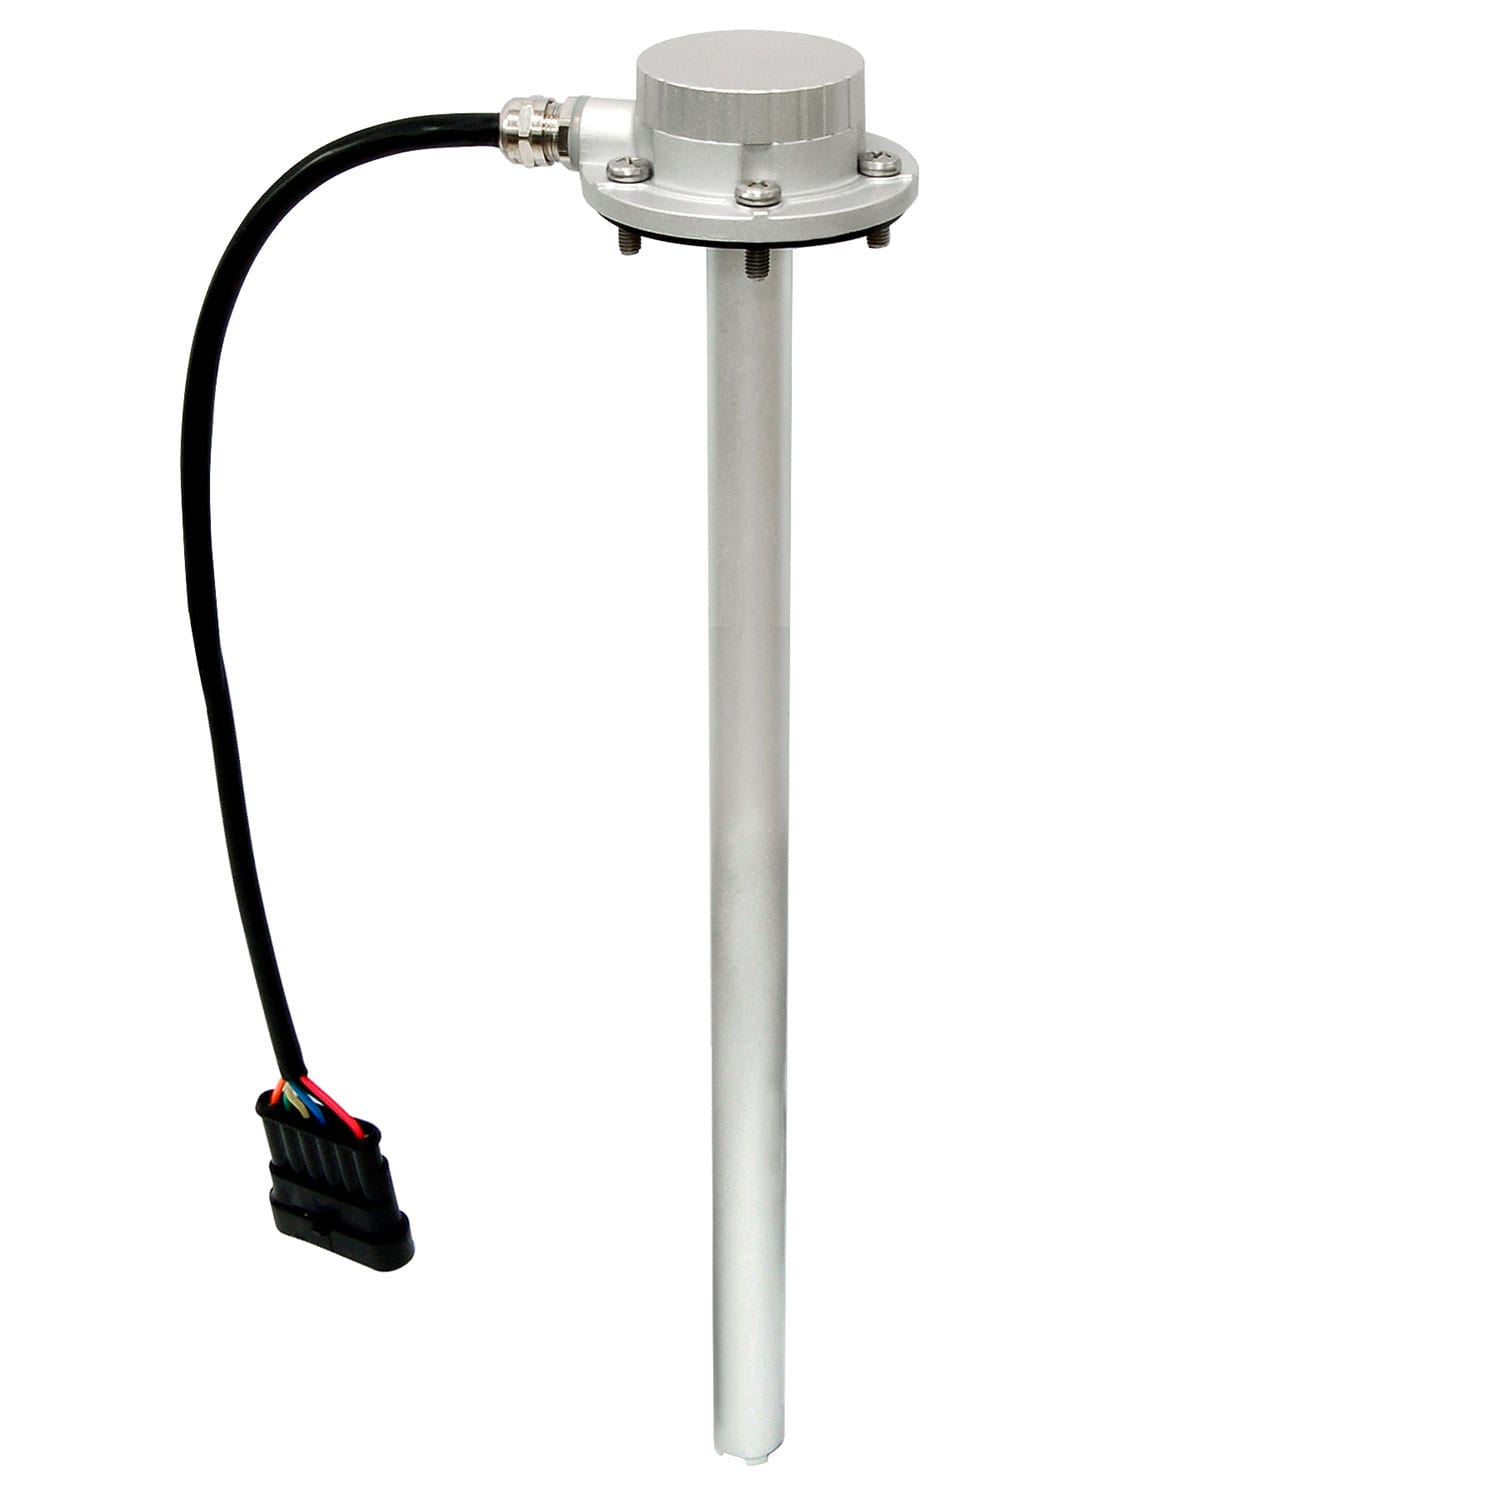 Capacitance Level Sensor - CLS